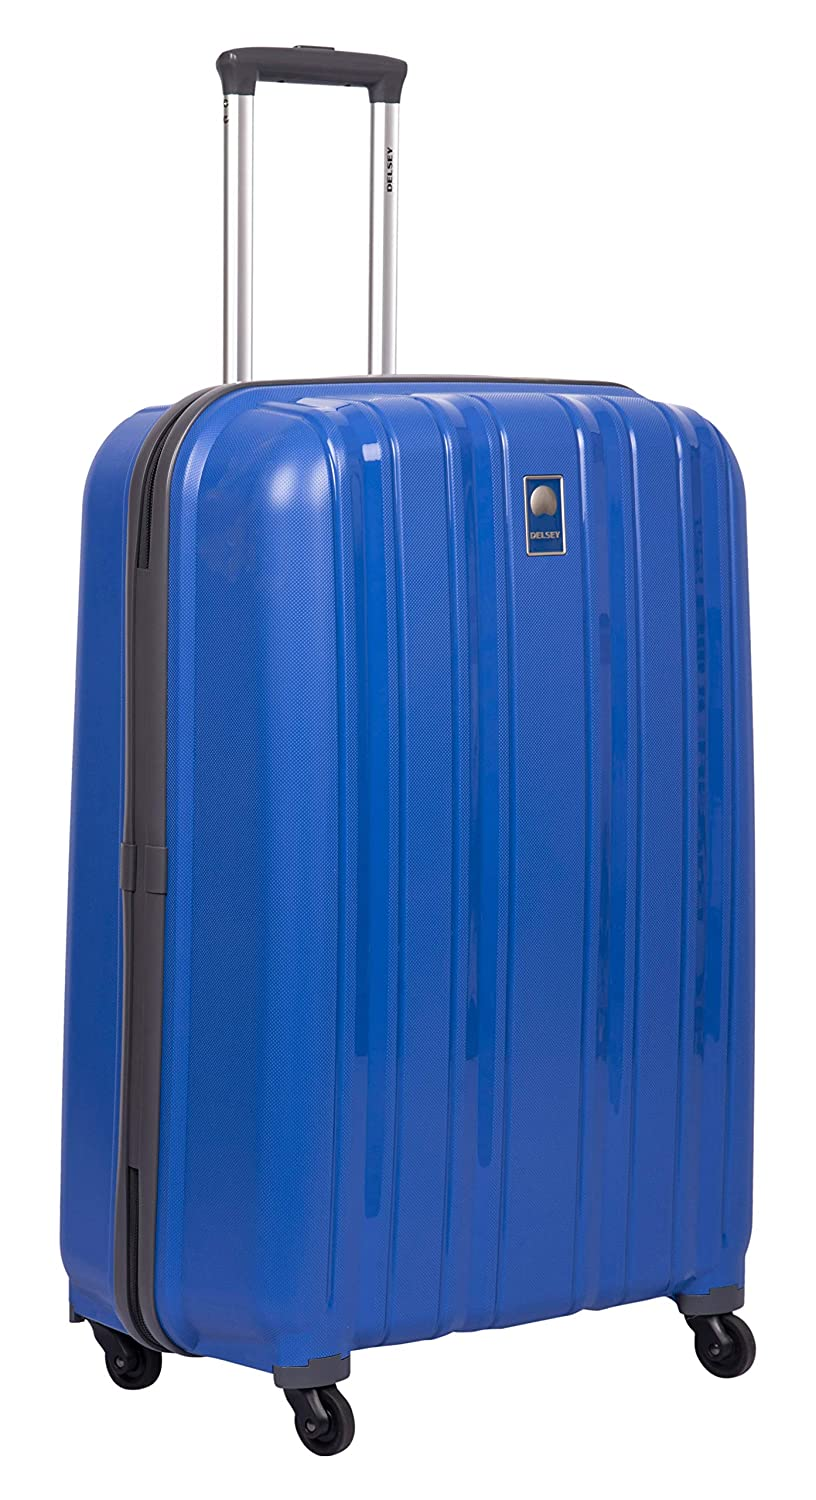 Delsey Cervin ABS 80 Cm 4 Wheels Blue Large Hard Suitcase